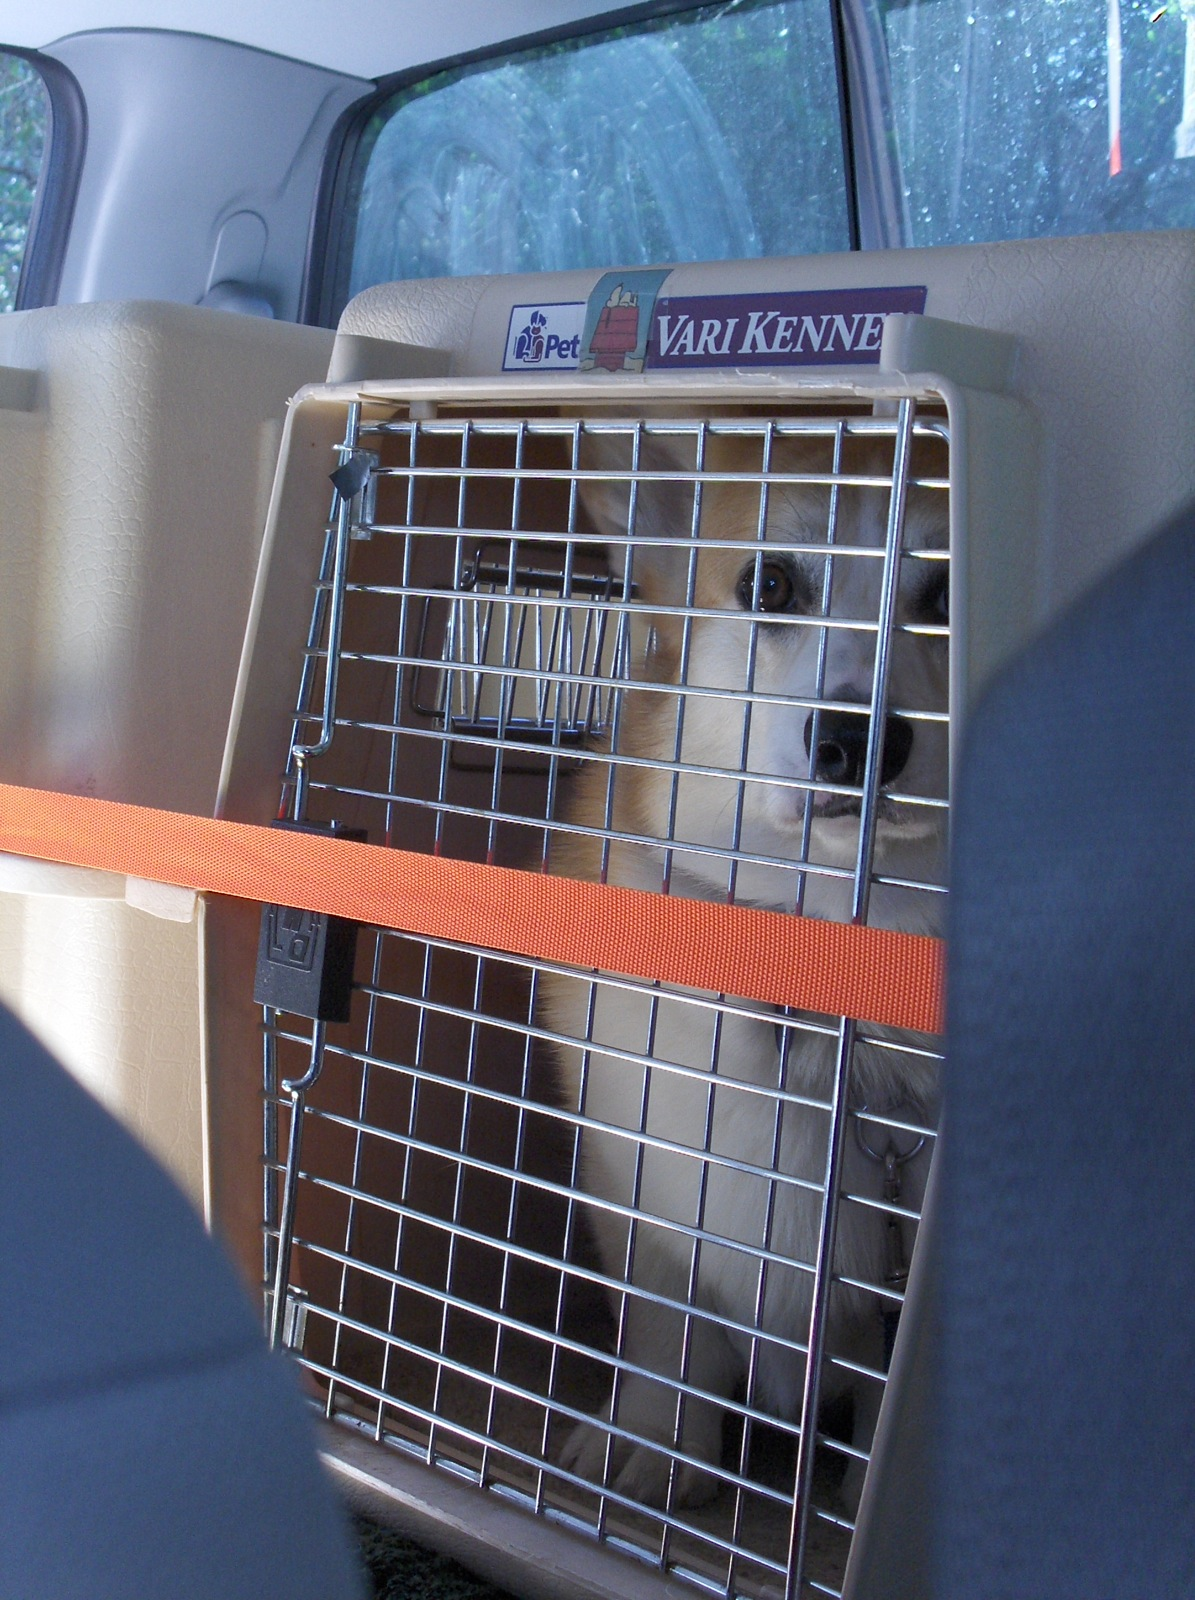 Click image for larger version  Name:HPIM2563 Mac in Vari Kennel crate.jpg Views:56 Size:539.0 KB ID:198286